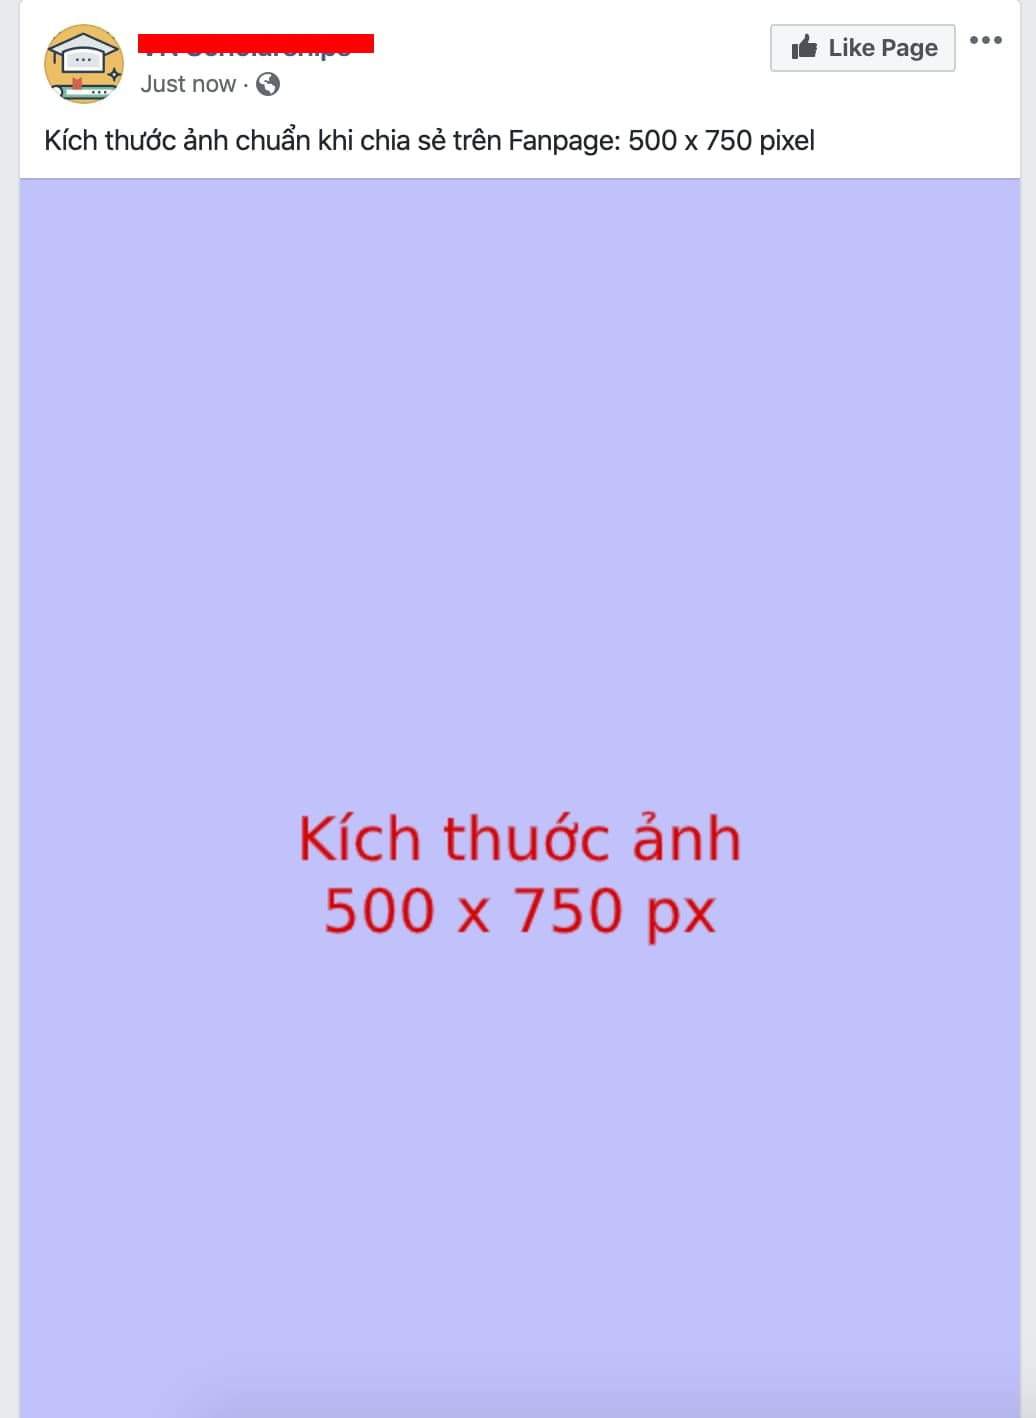 kich-thuoc-anh-facebook-3